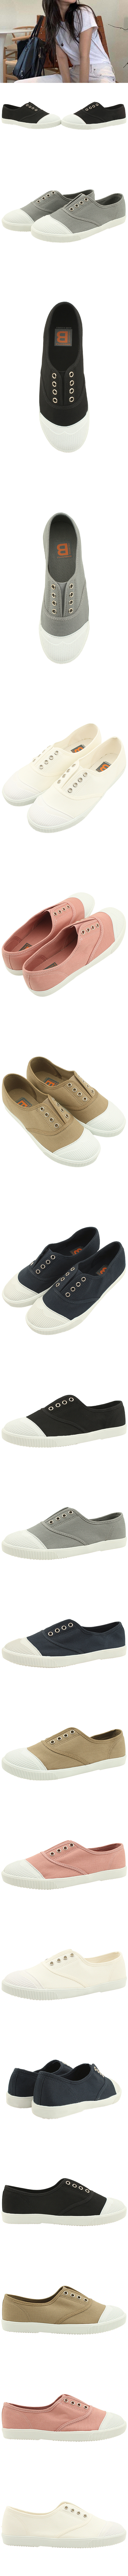 Canvas Shoes Cotton Casual Sneakers White